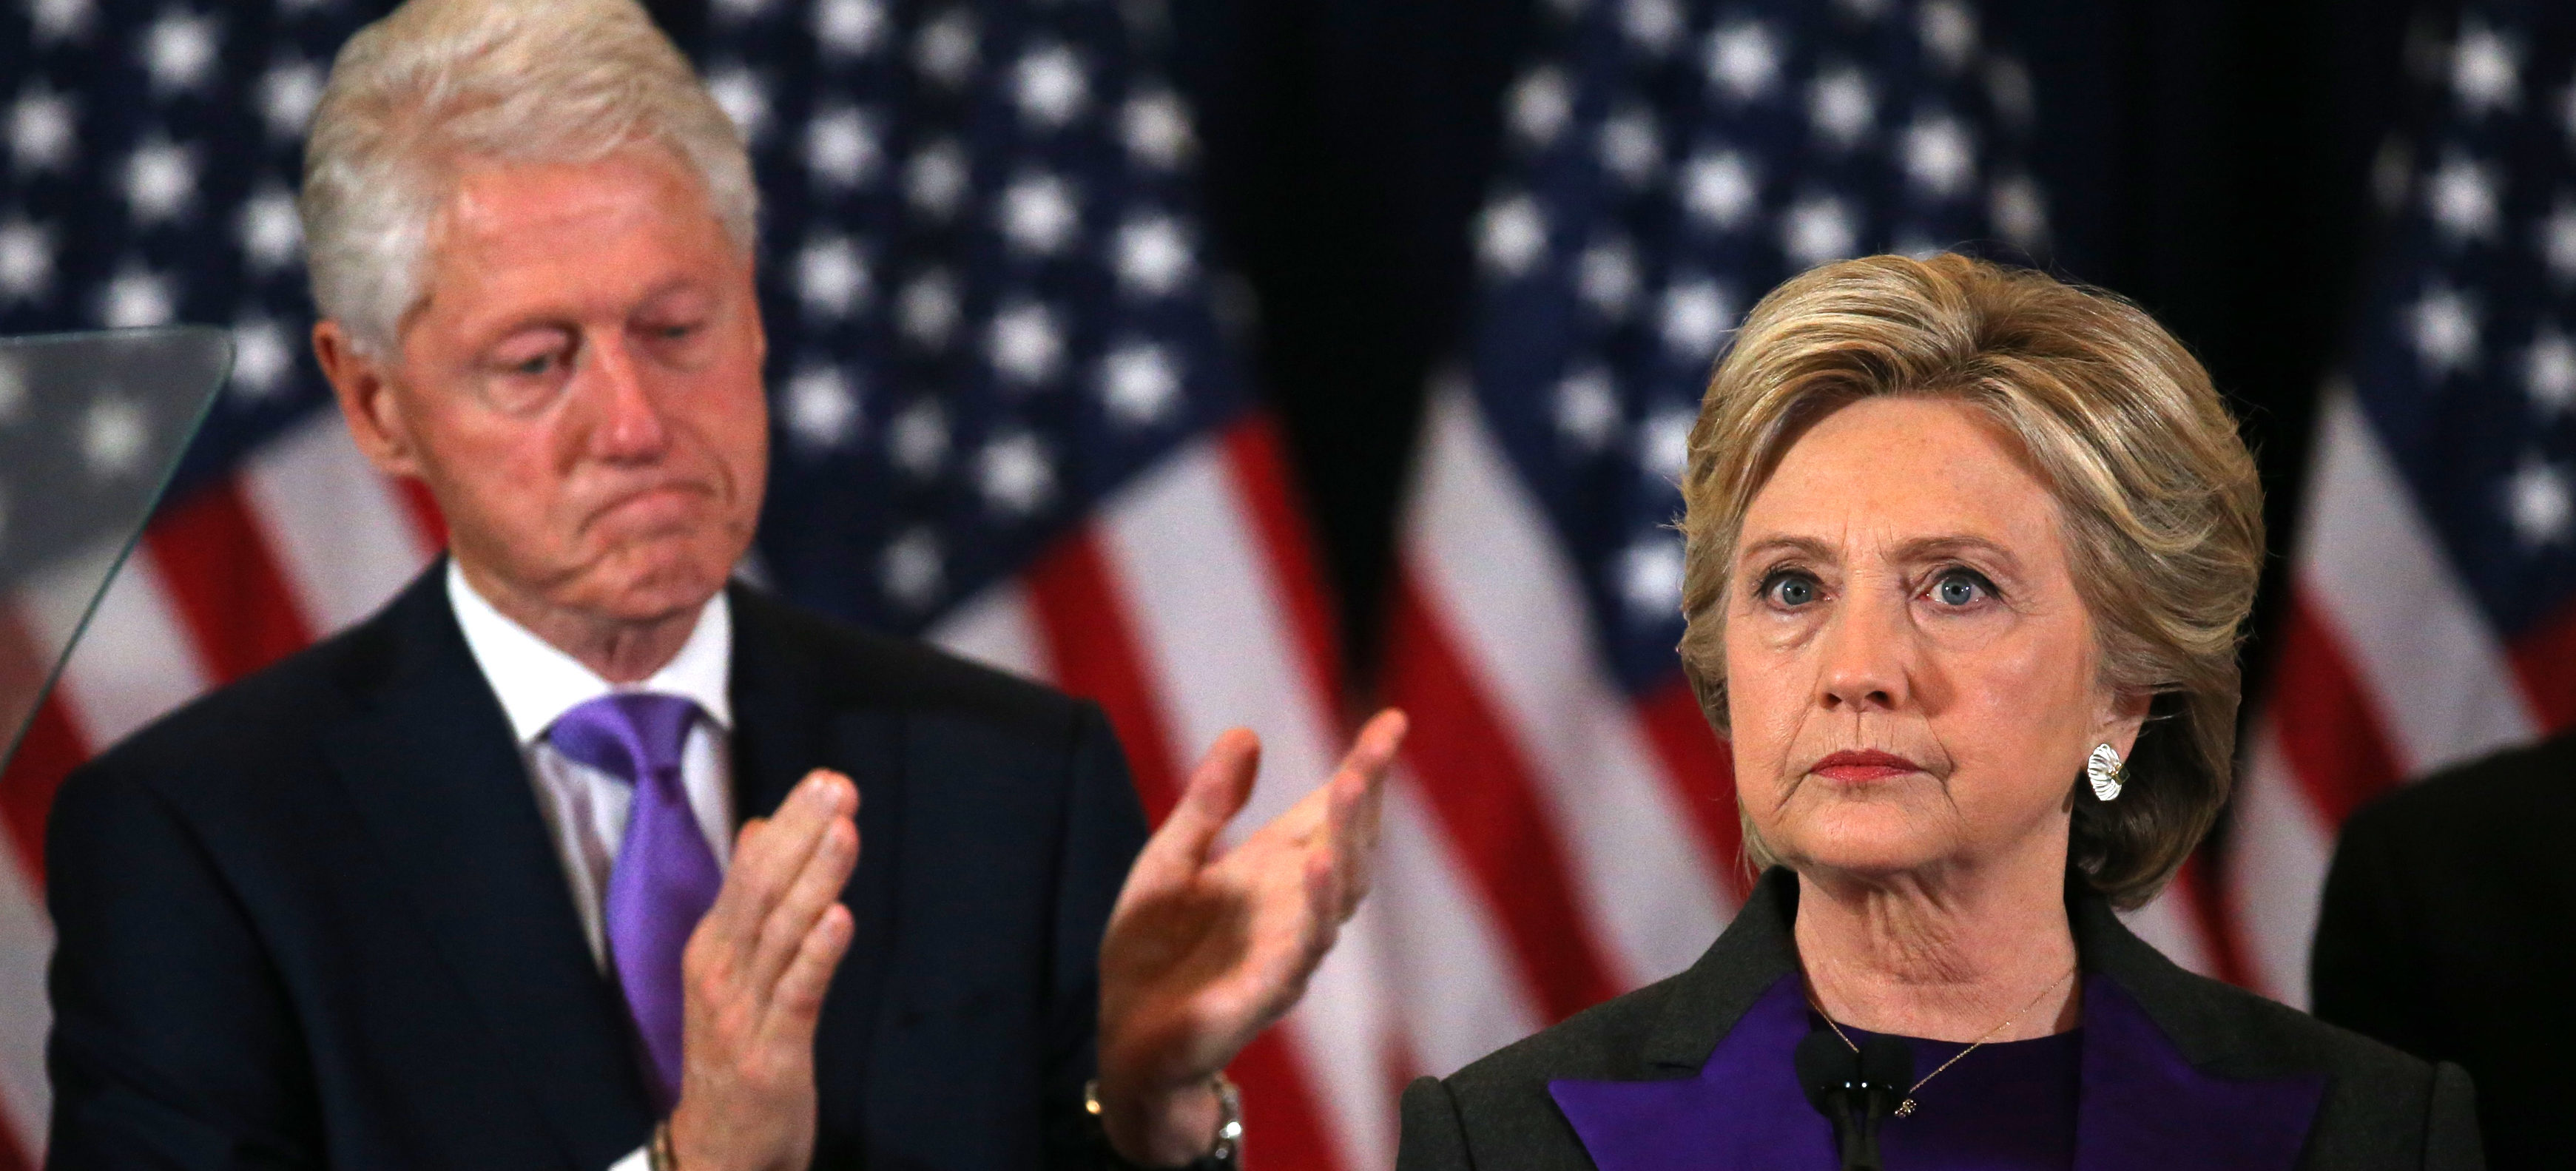 Former Secret Service Agent Slaps Lawsuit On Clintons, Podesta And More